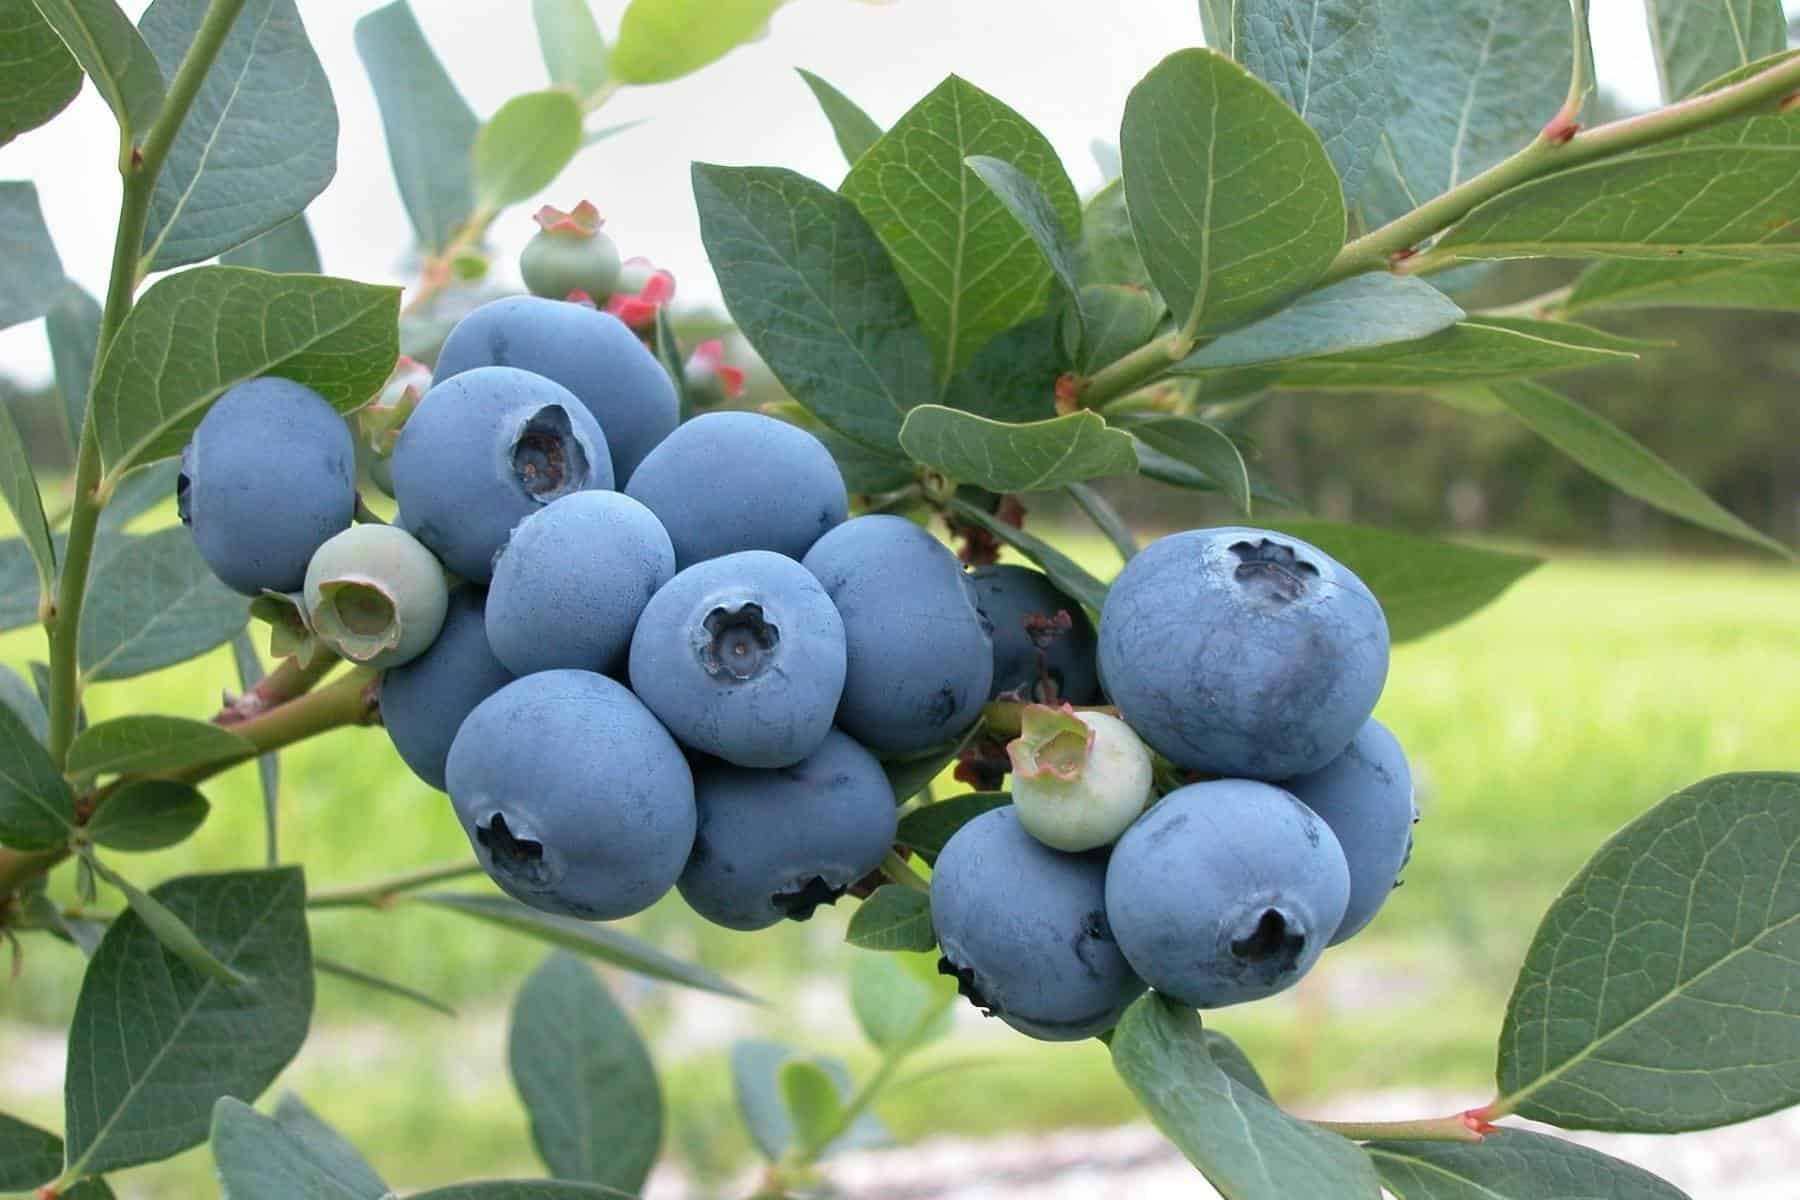 Do Blueberries Have Seeds?